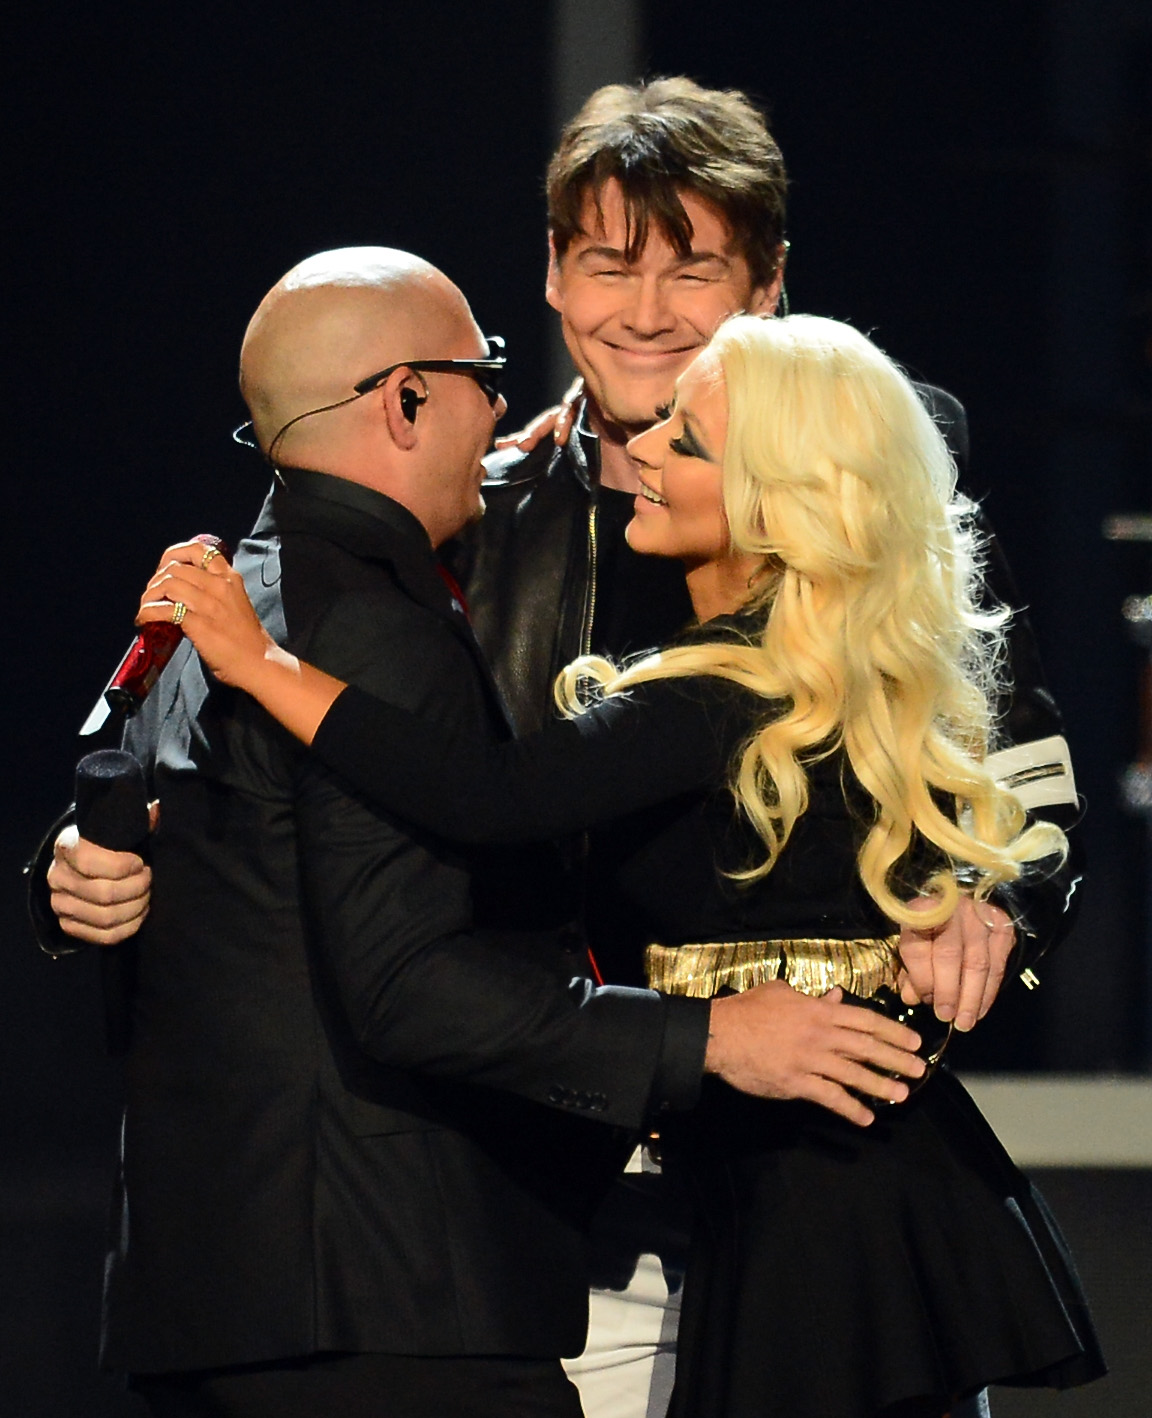 Christina Aguilera, Pitbull, and Morten Harket hugged it out.